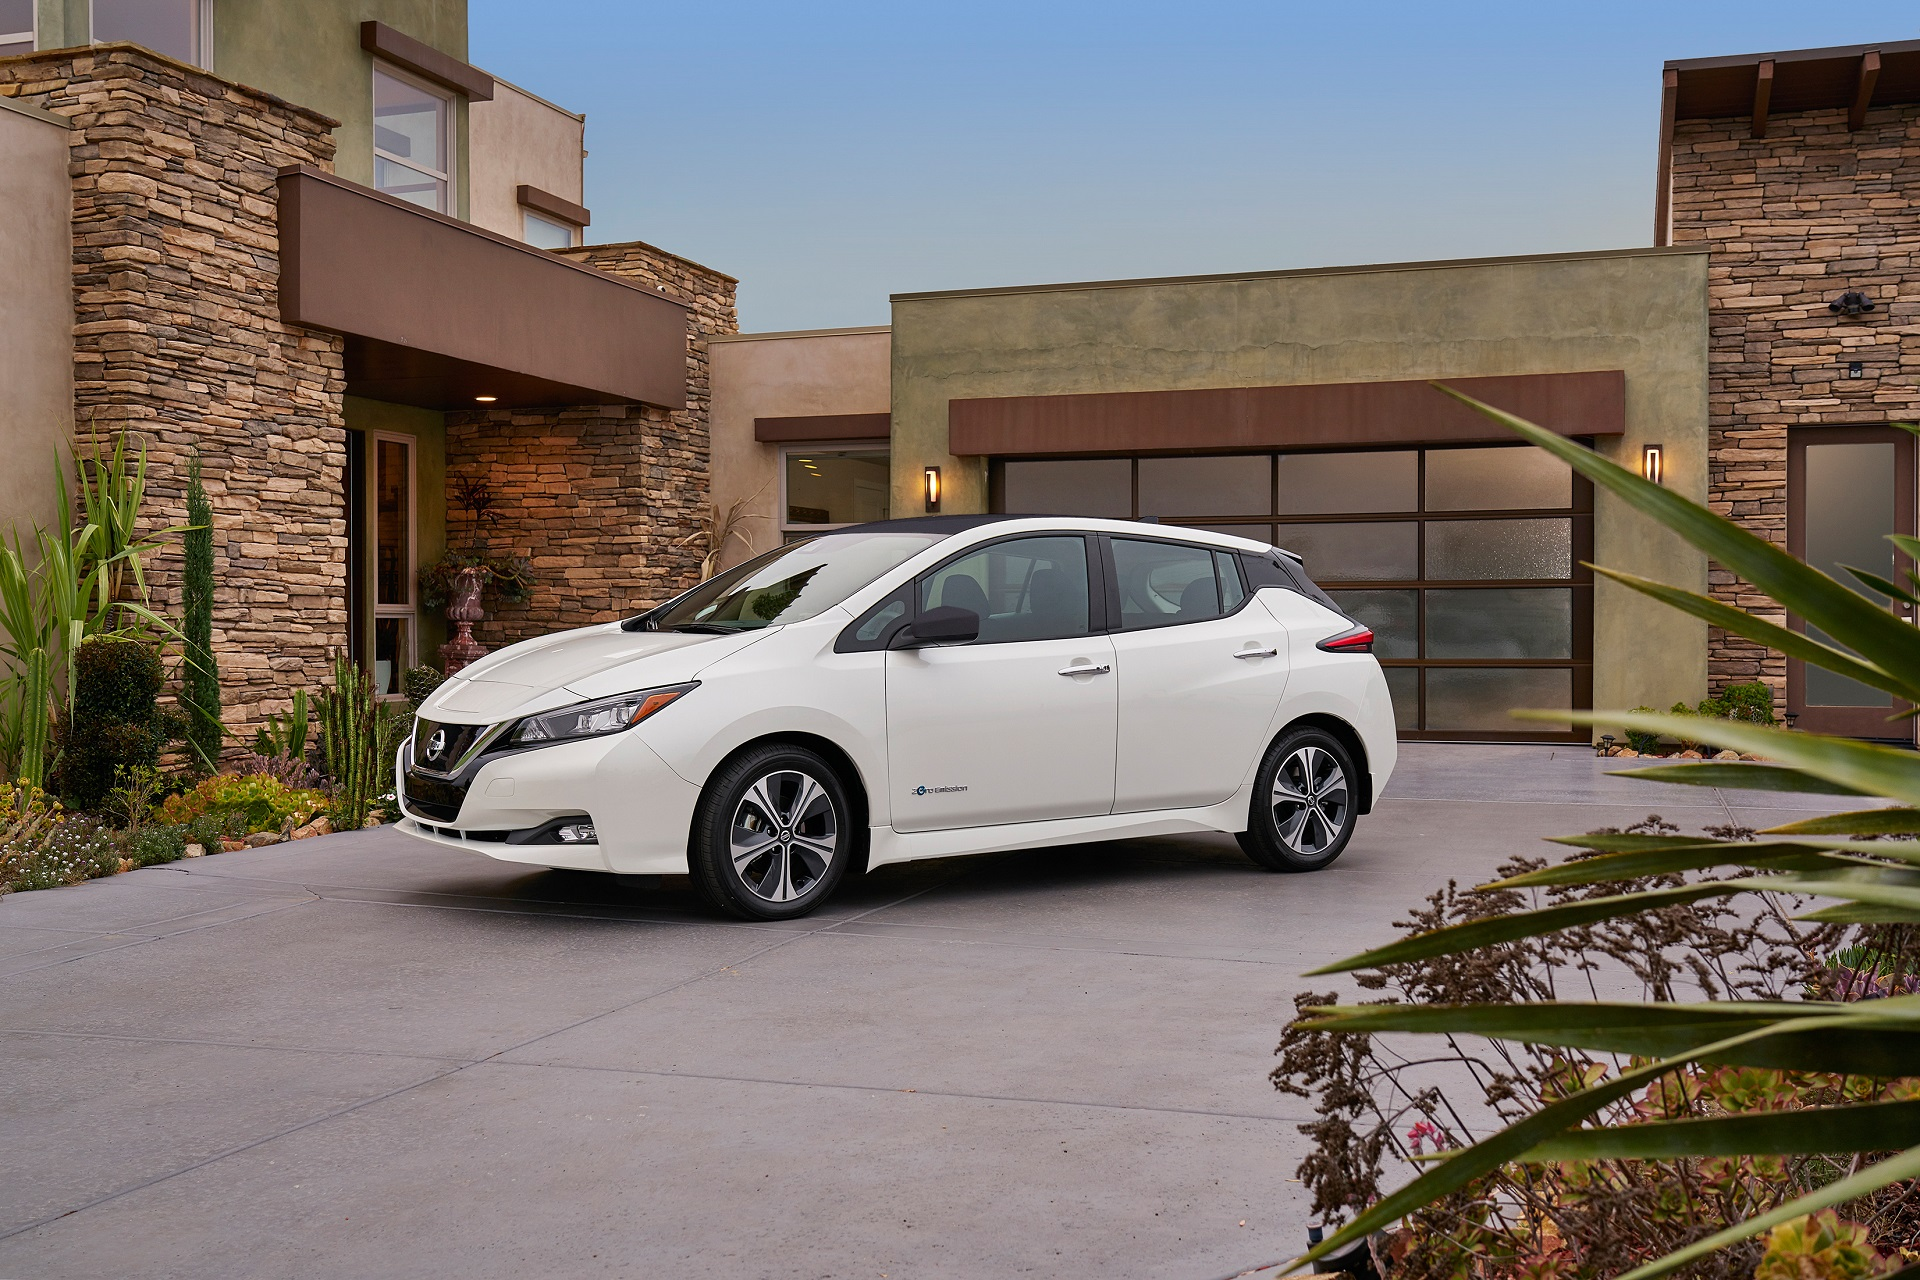 Keep your parked electric car and its battery healthy with these simple tips